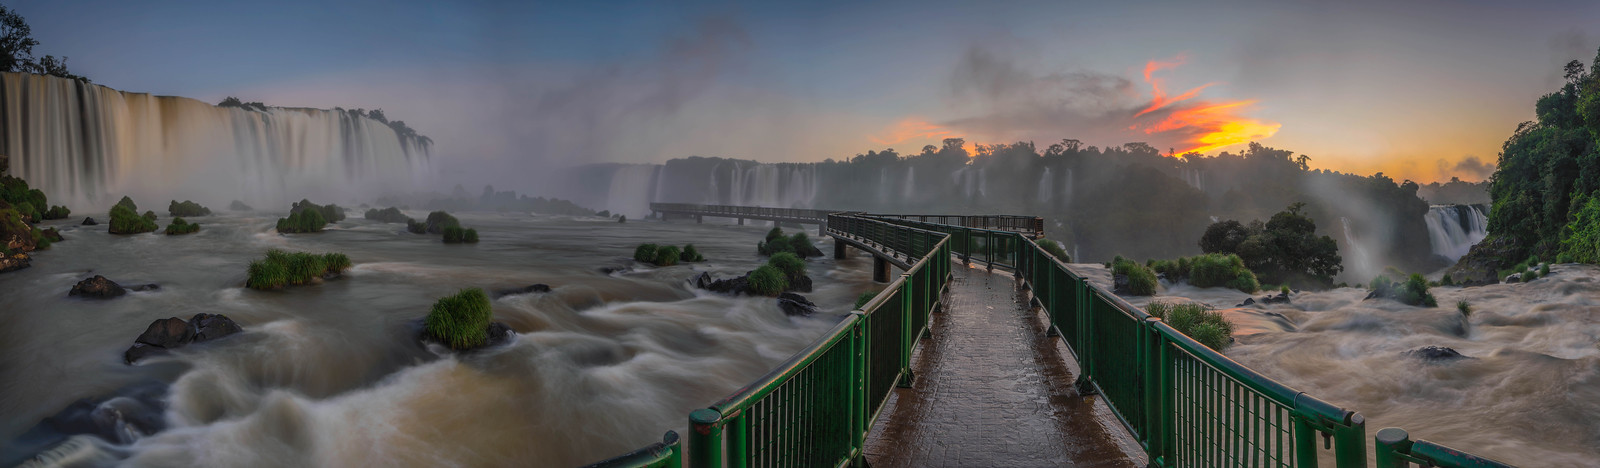 Sunset at Iguassu Falls, Brazil